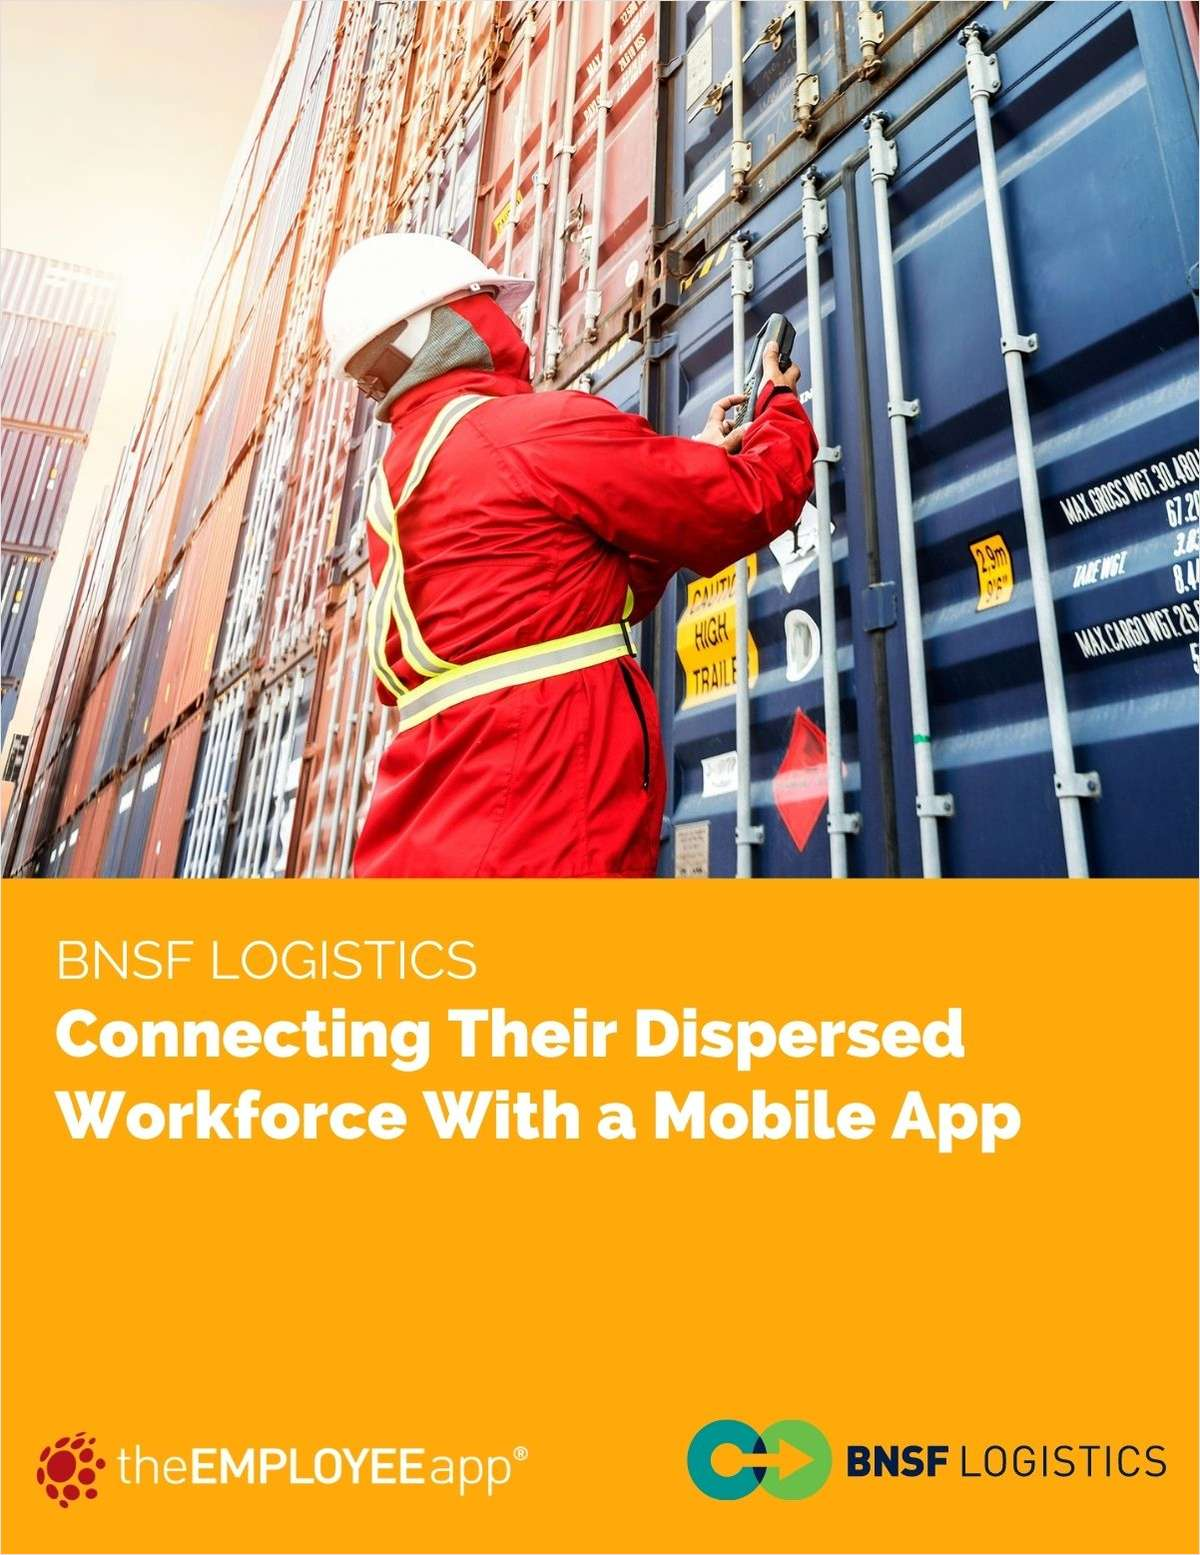 How BNSF Logistics Connects Their Dispersed Workforce